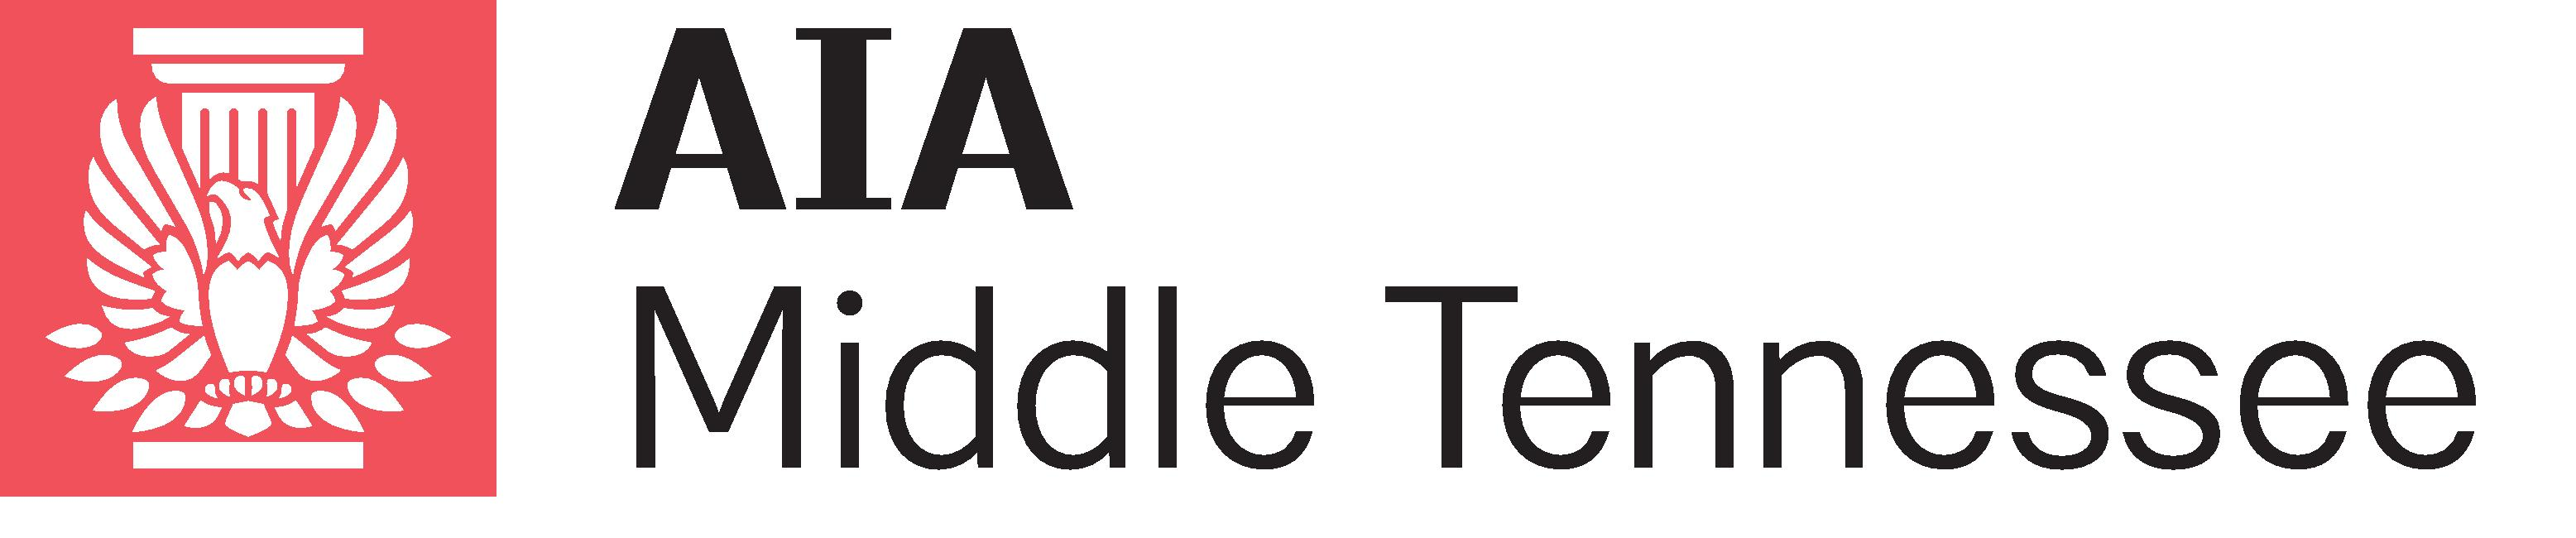 AIA_Middle_Tennessee_logo_CMYK-page-001